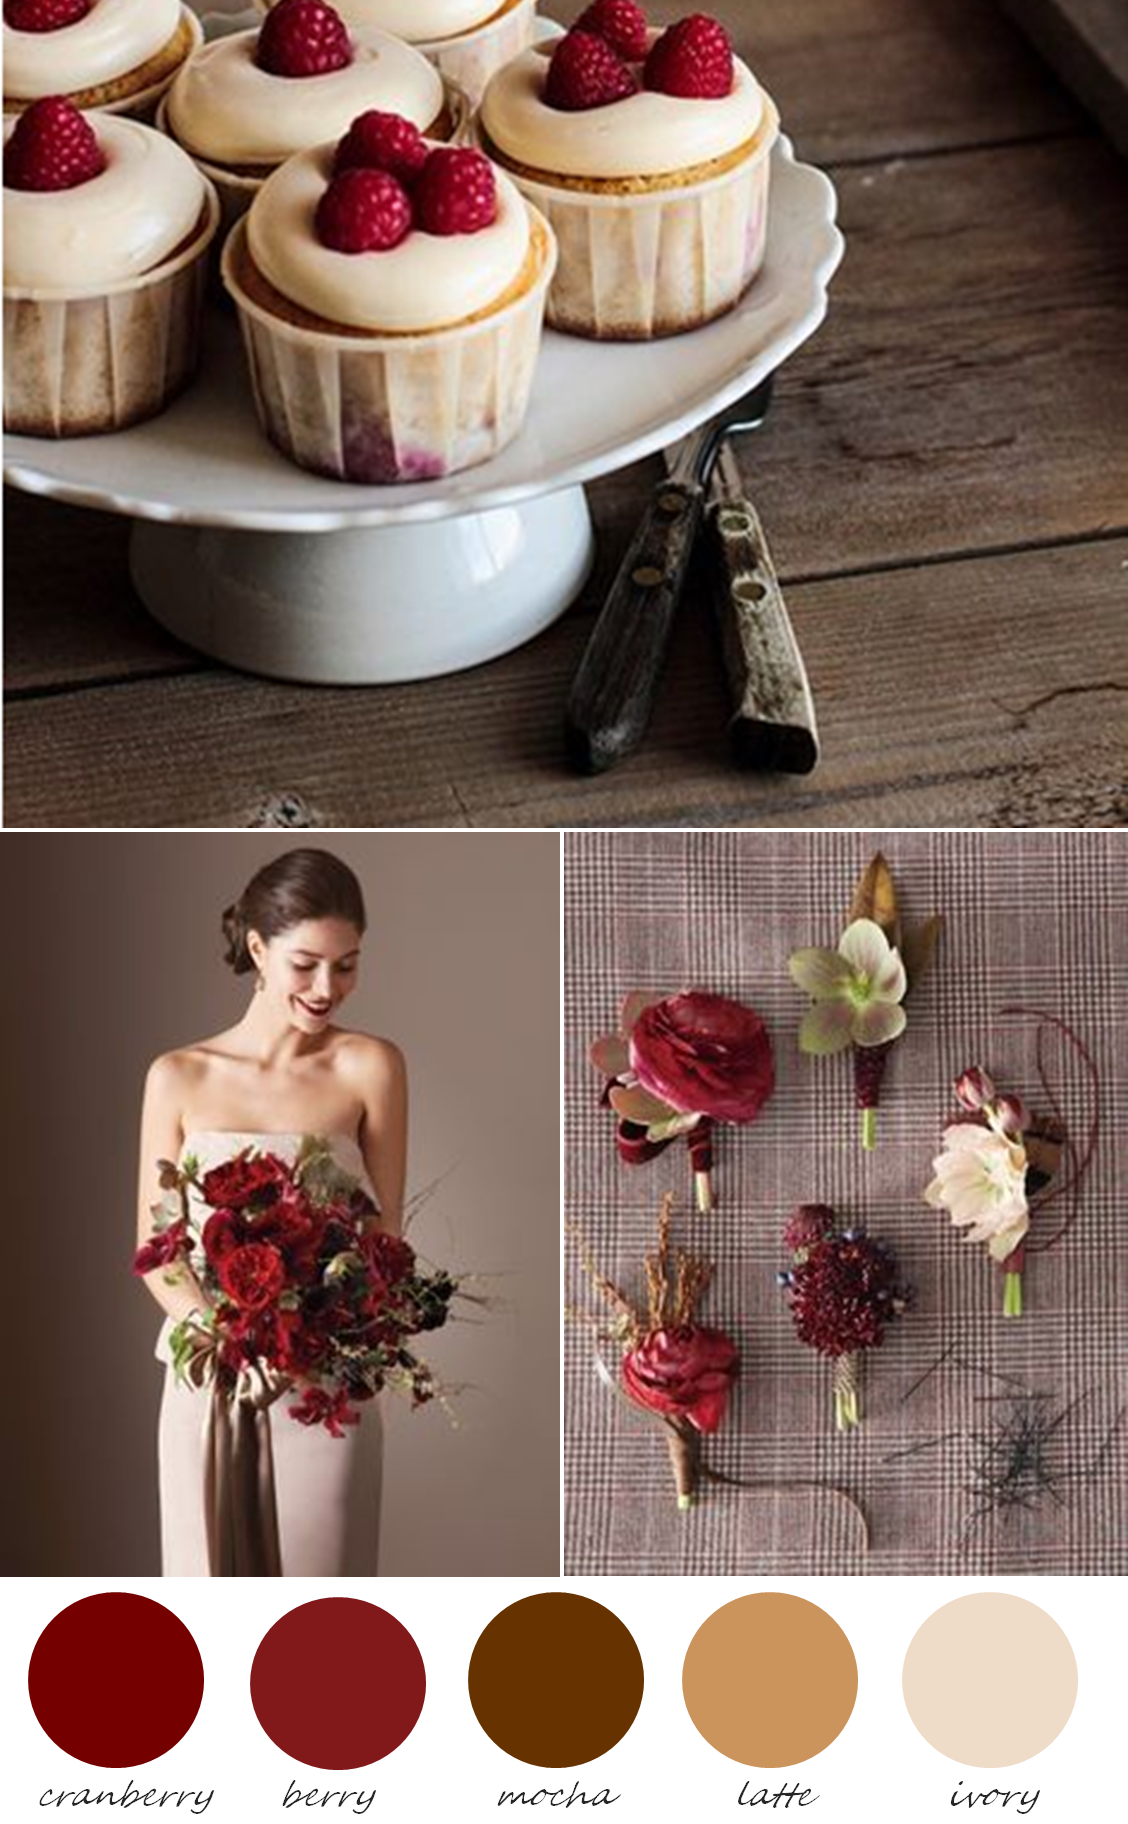 Cranberry champagne wedding - Color Me Inspired